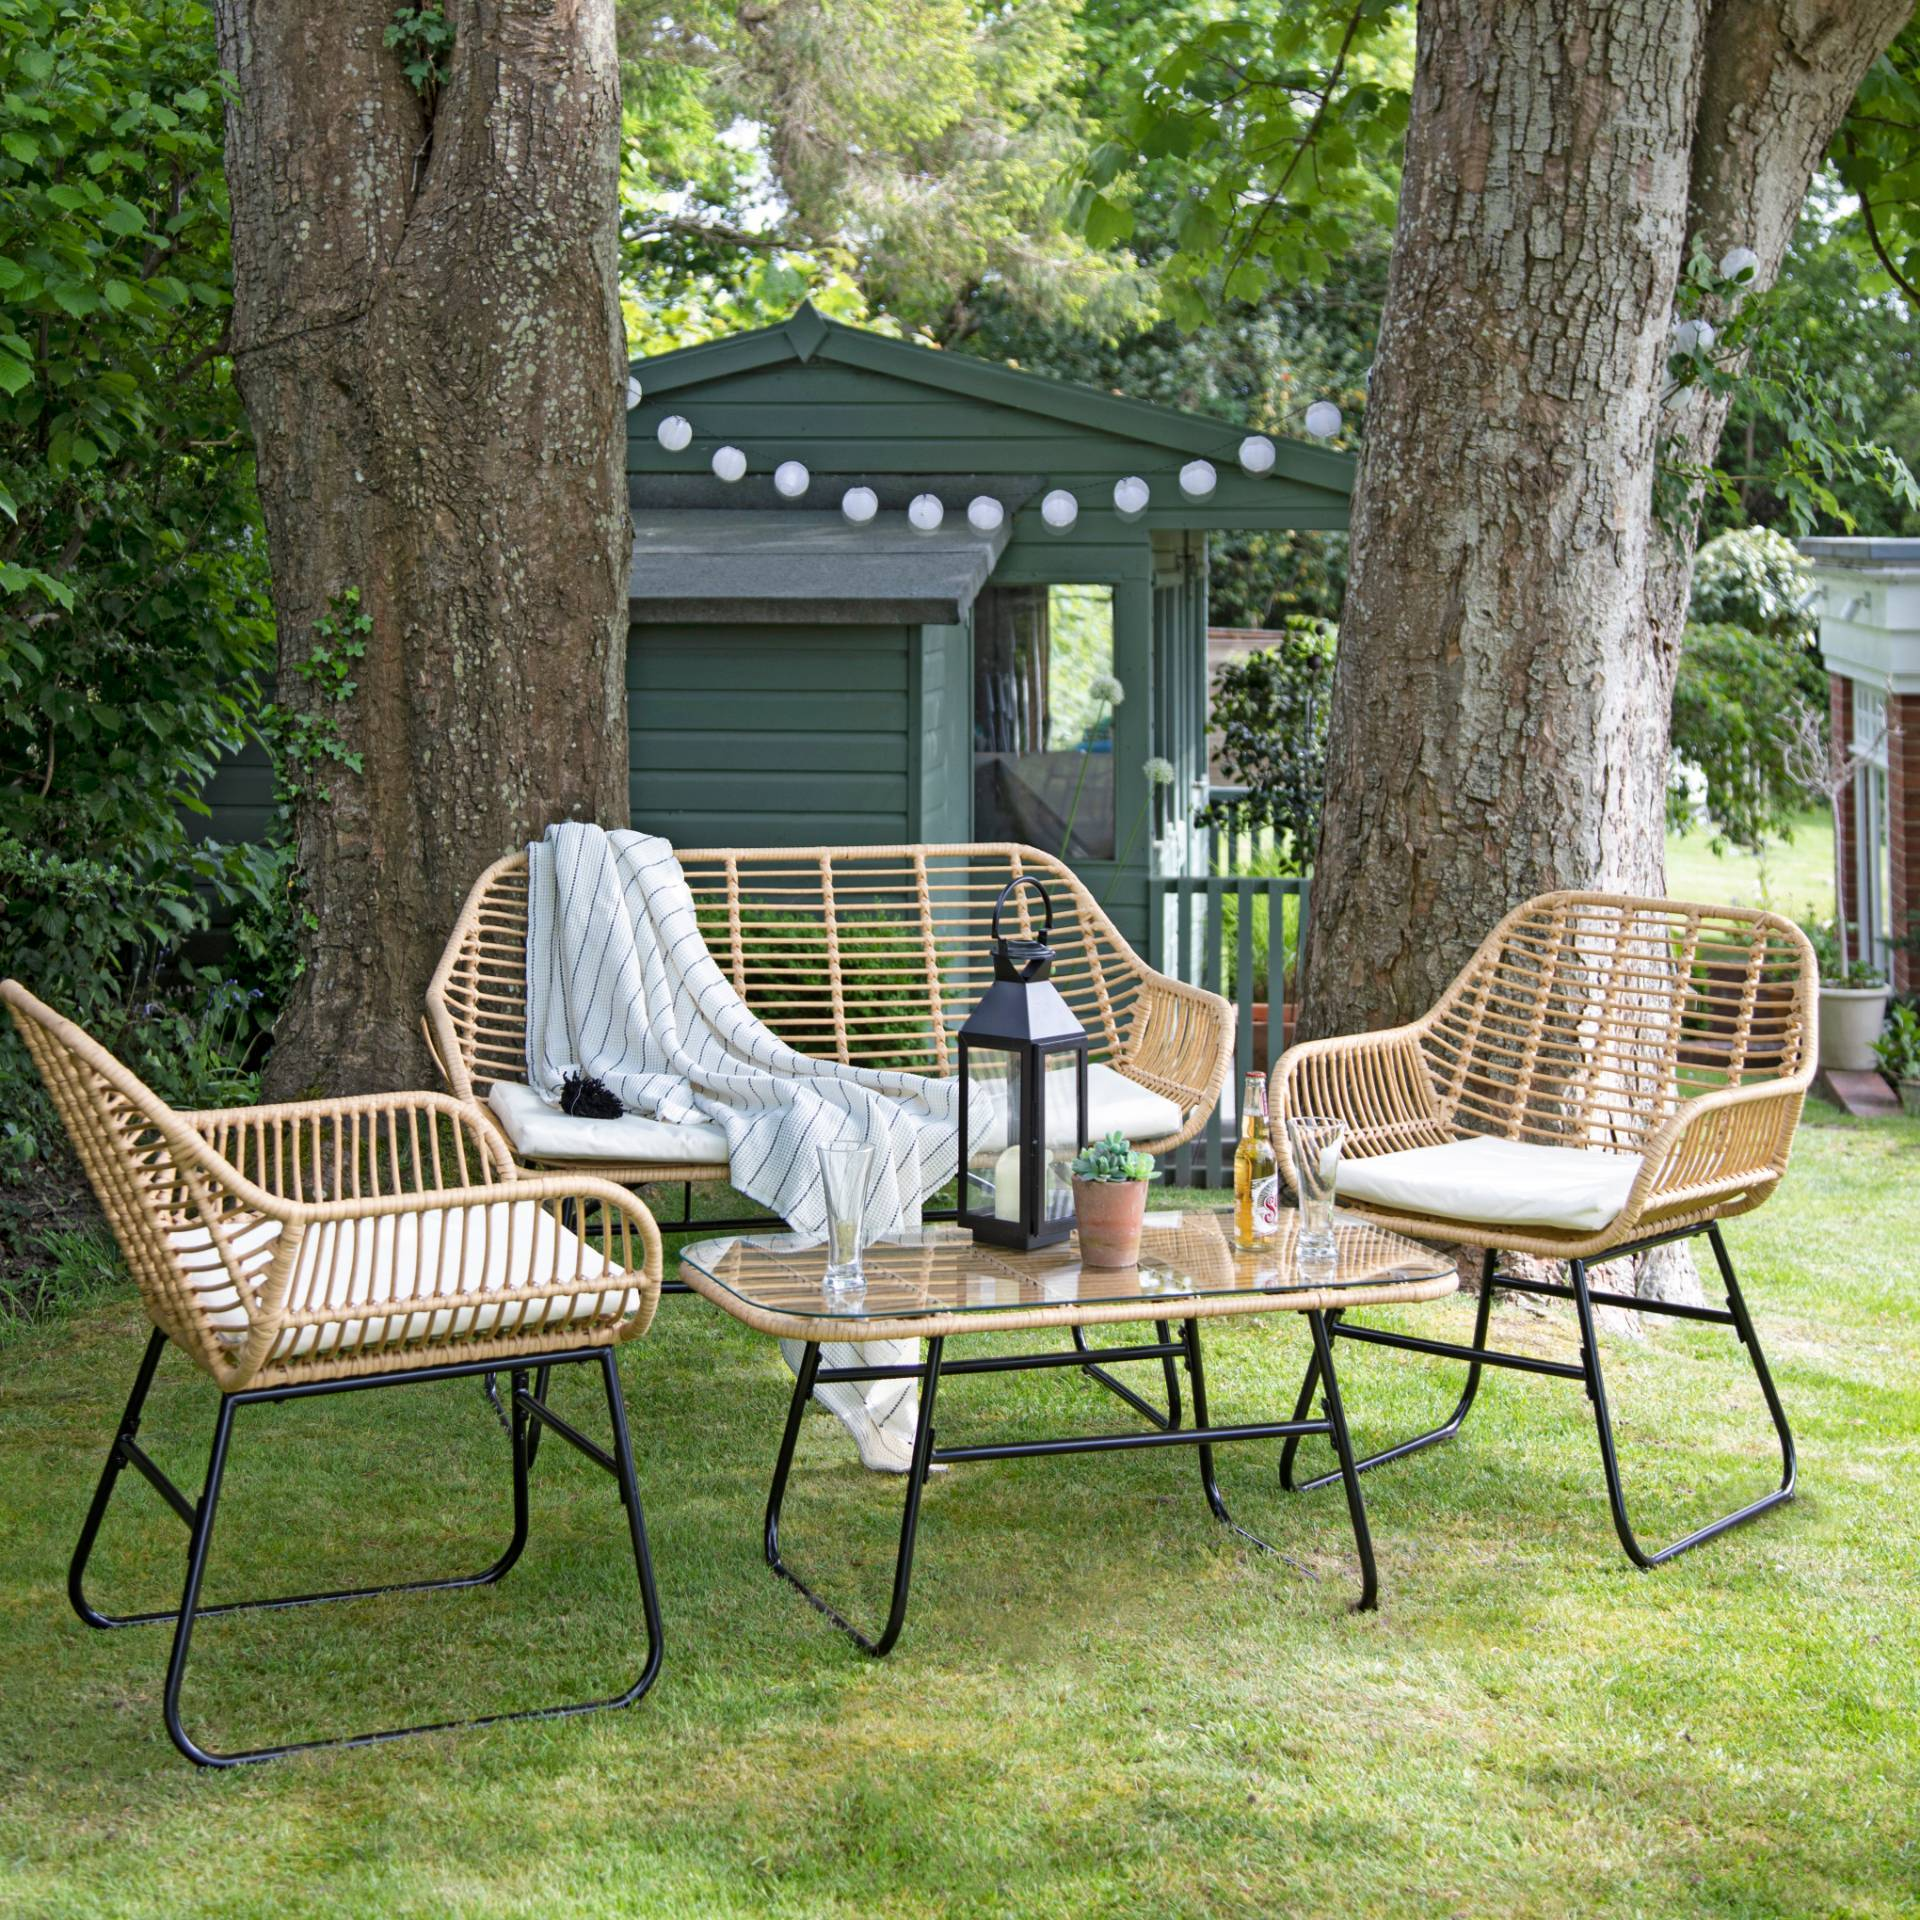 Rattan Sofa Set - outdoor furniture - Natural - Laura James